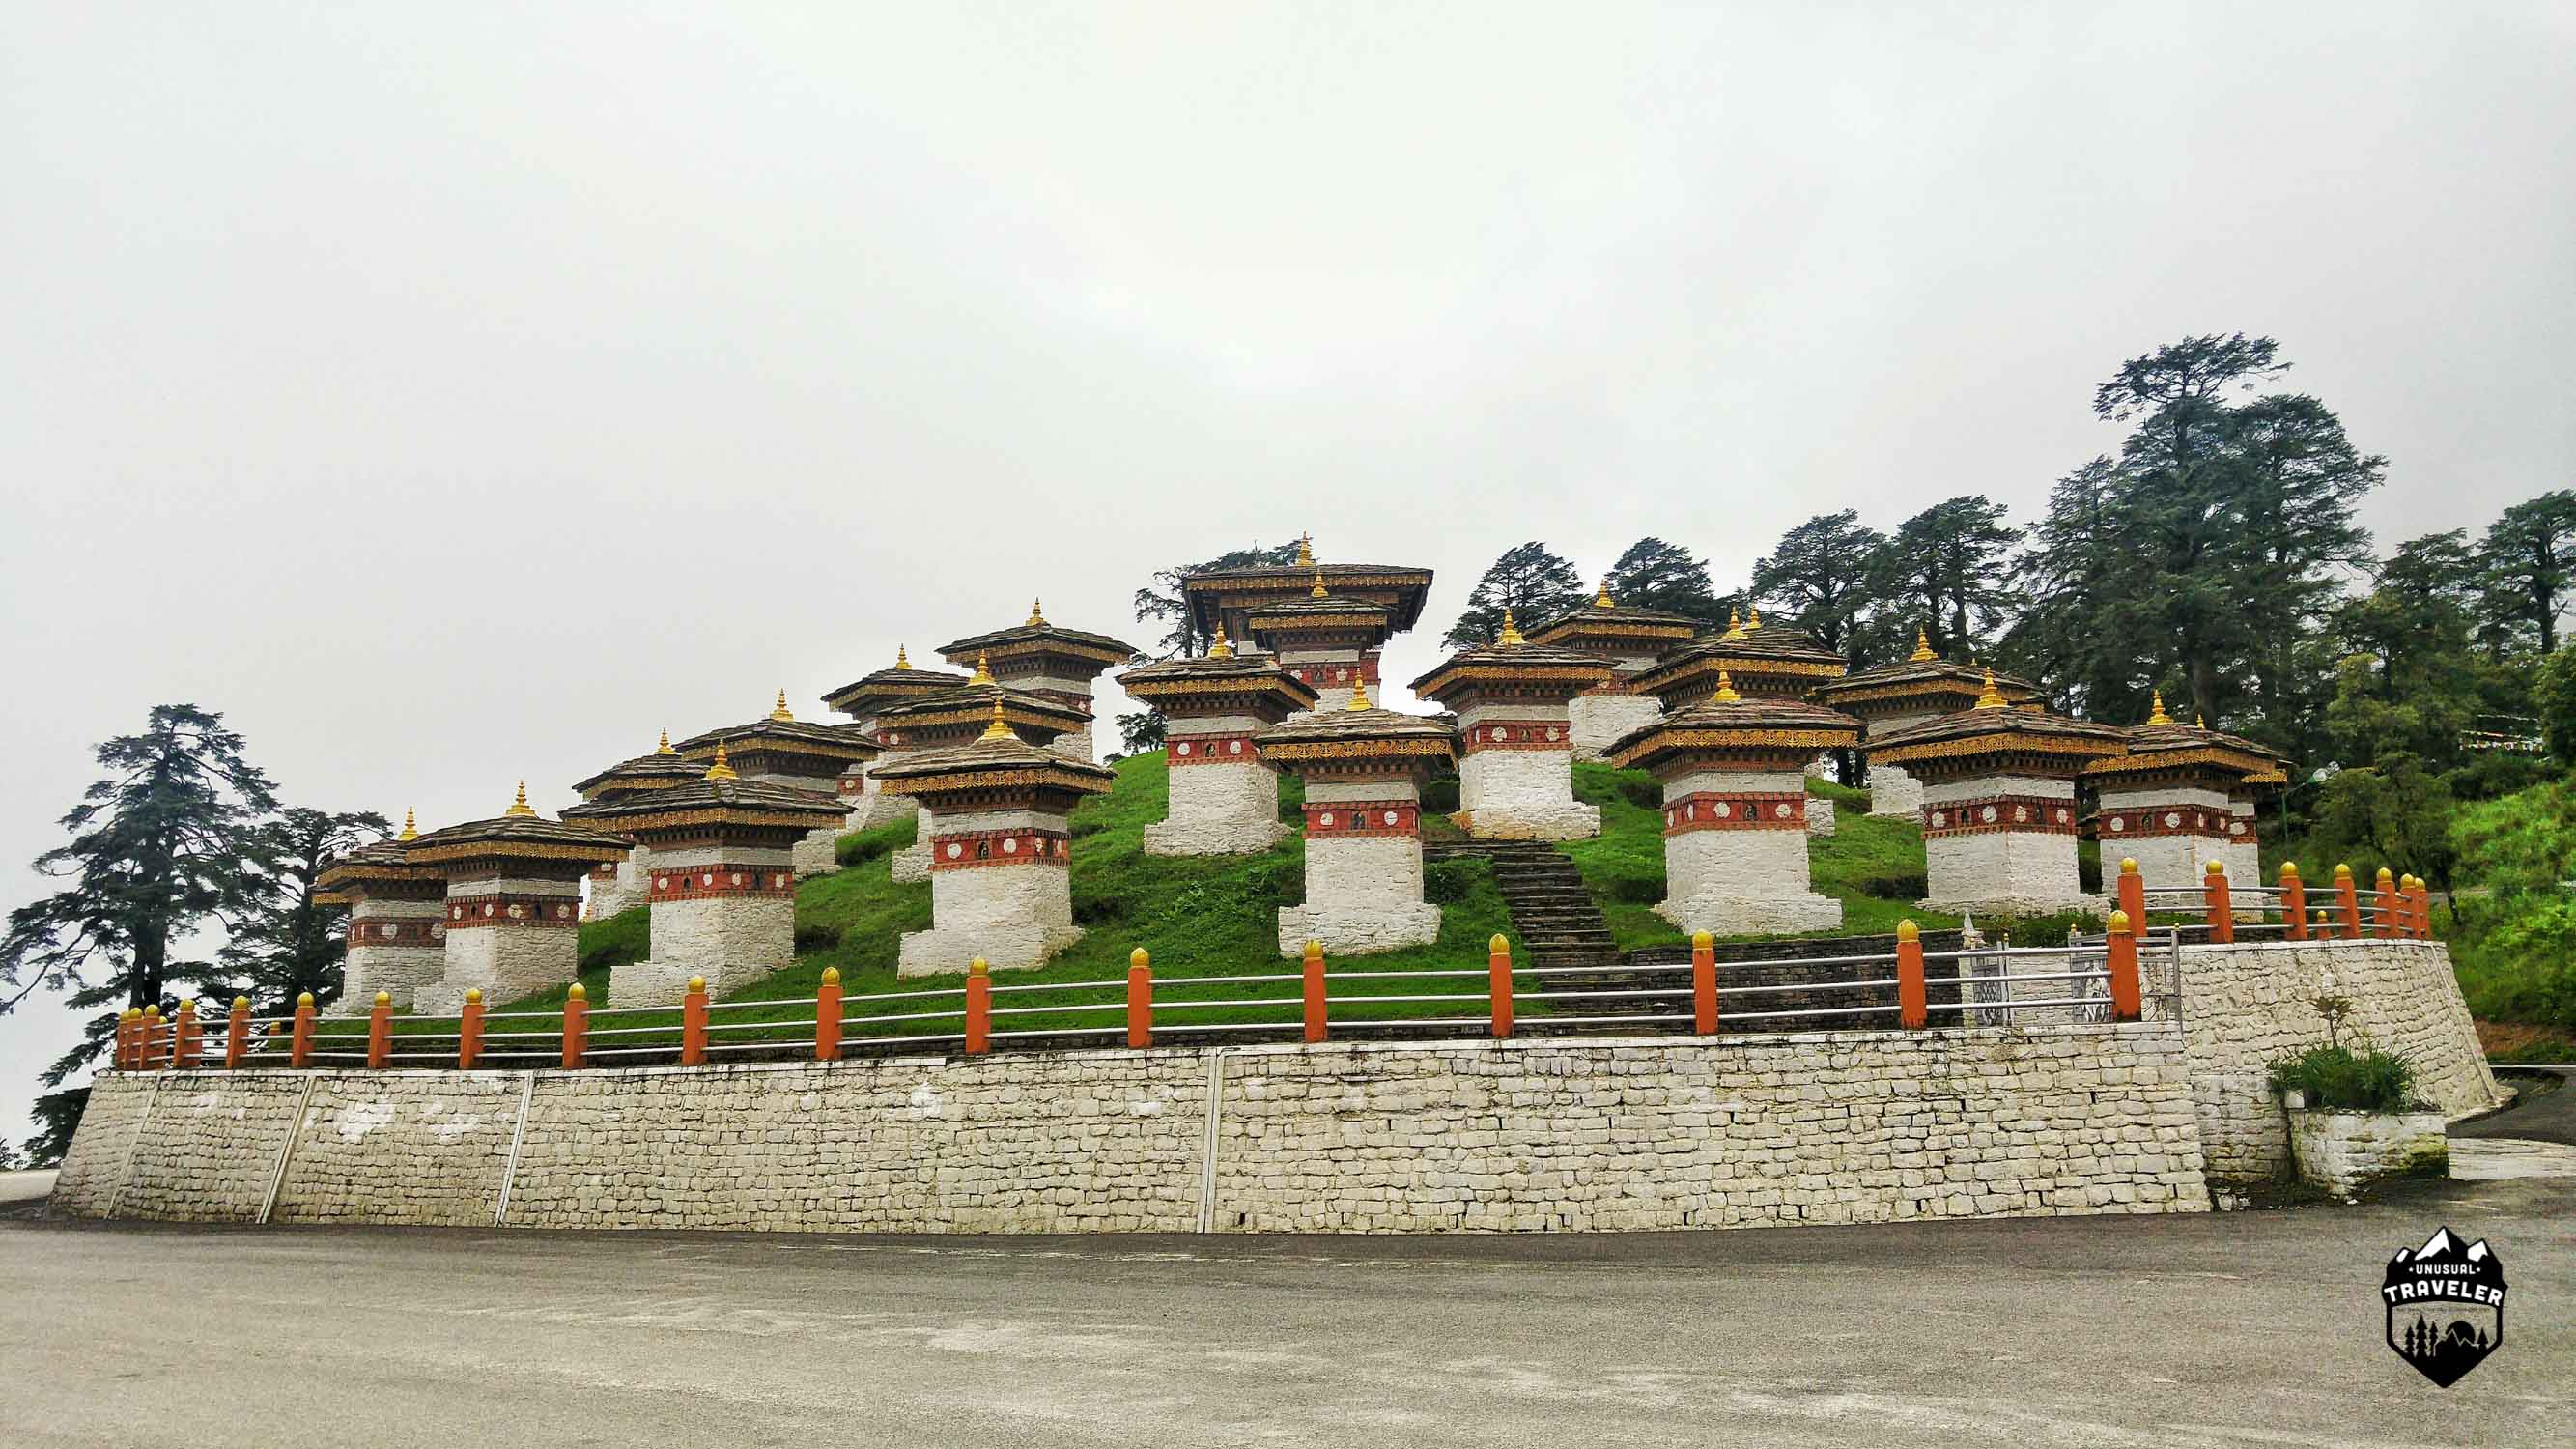 Some of the 108 stupas called chortens in English